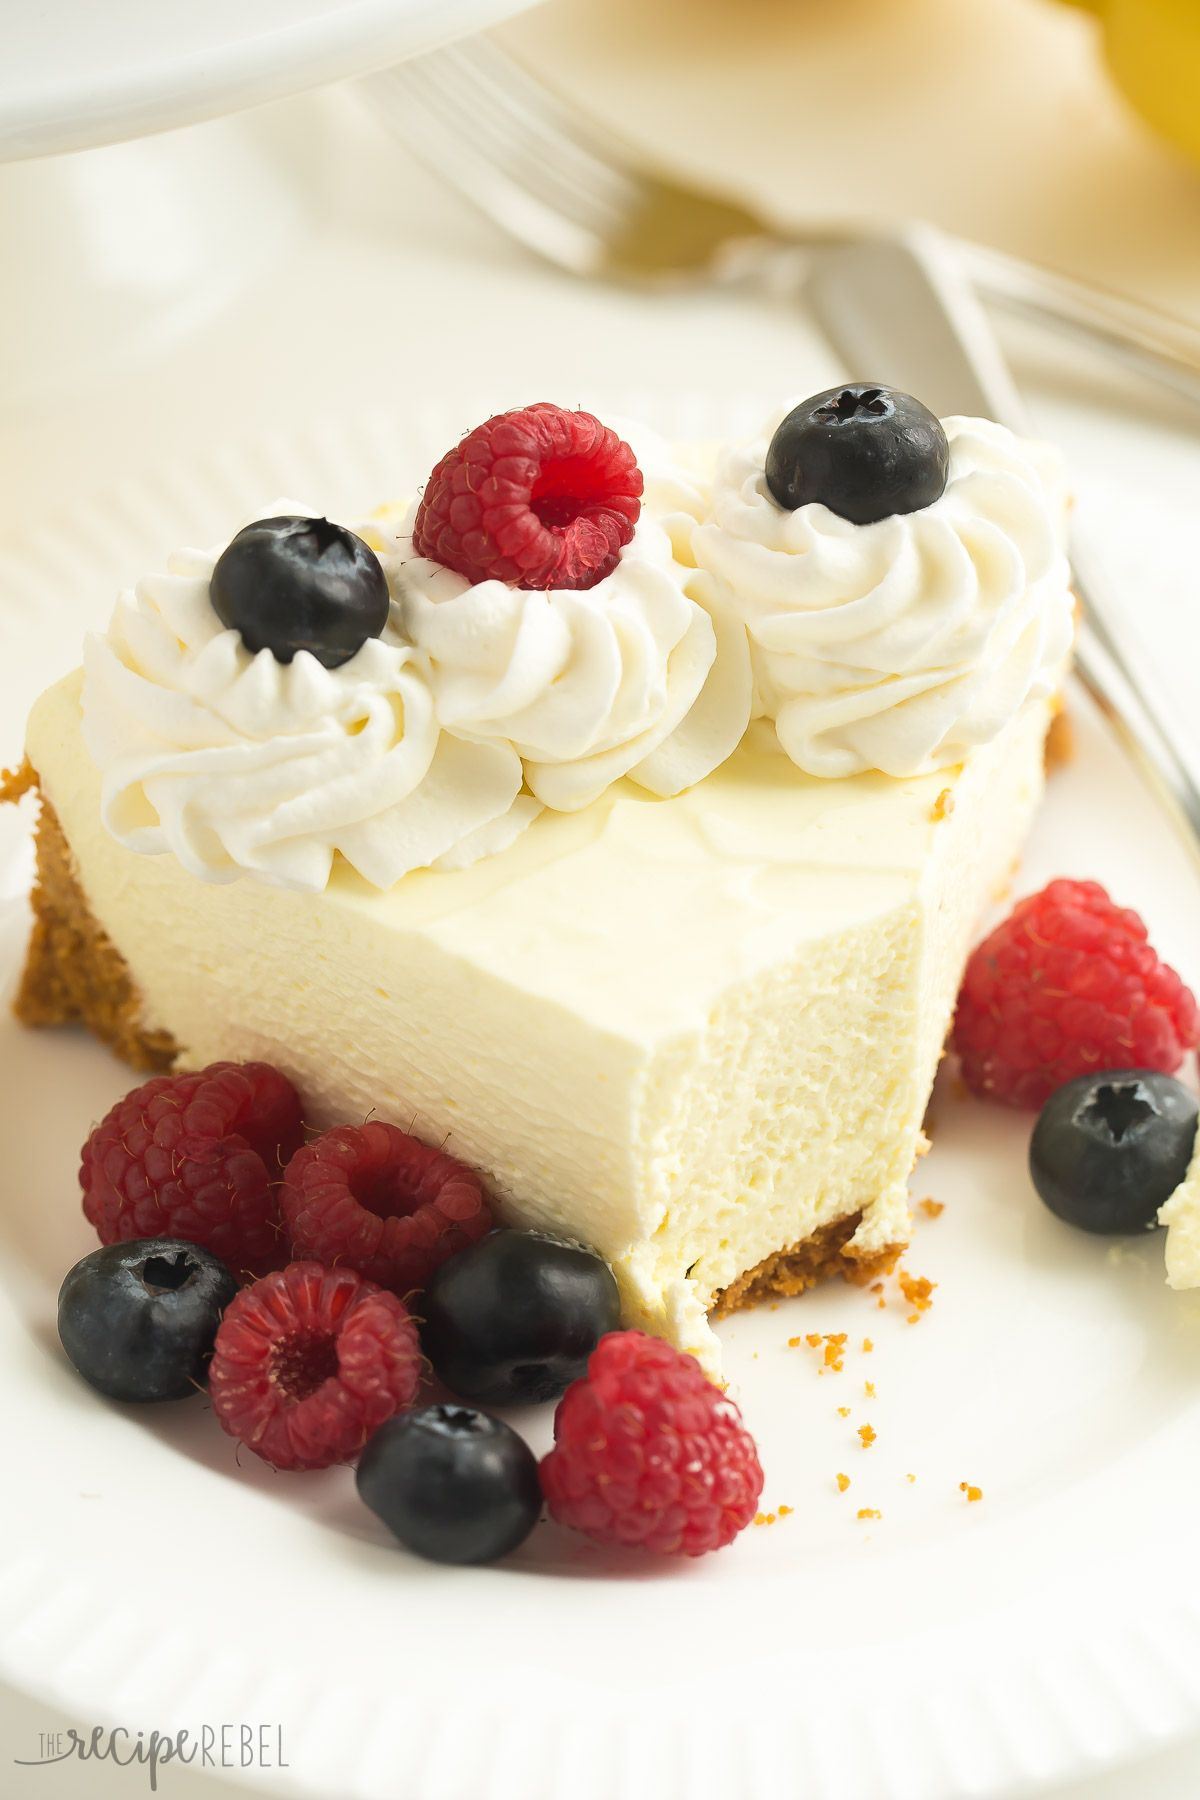 Pin On Desserts For Special Occasions